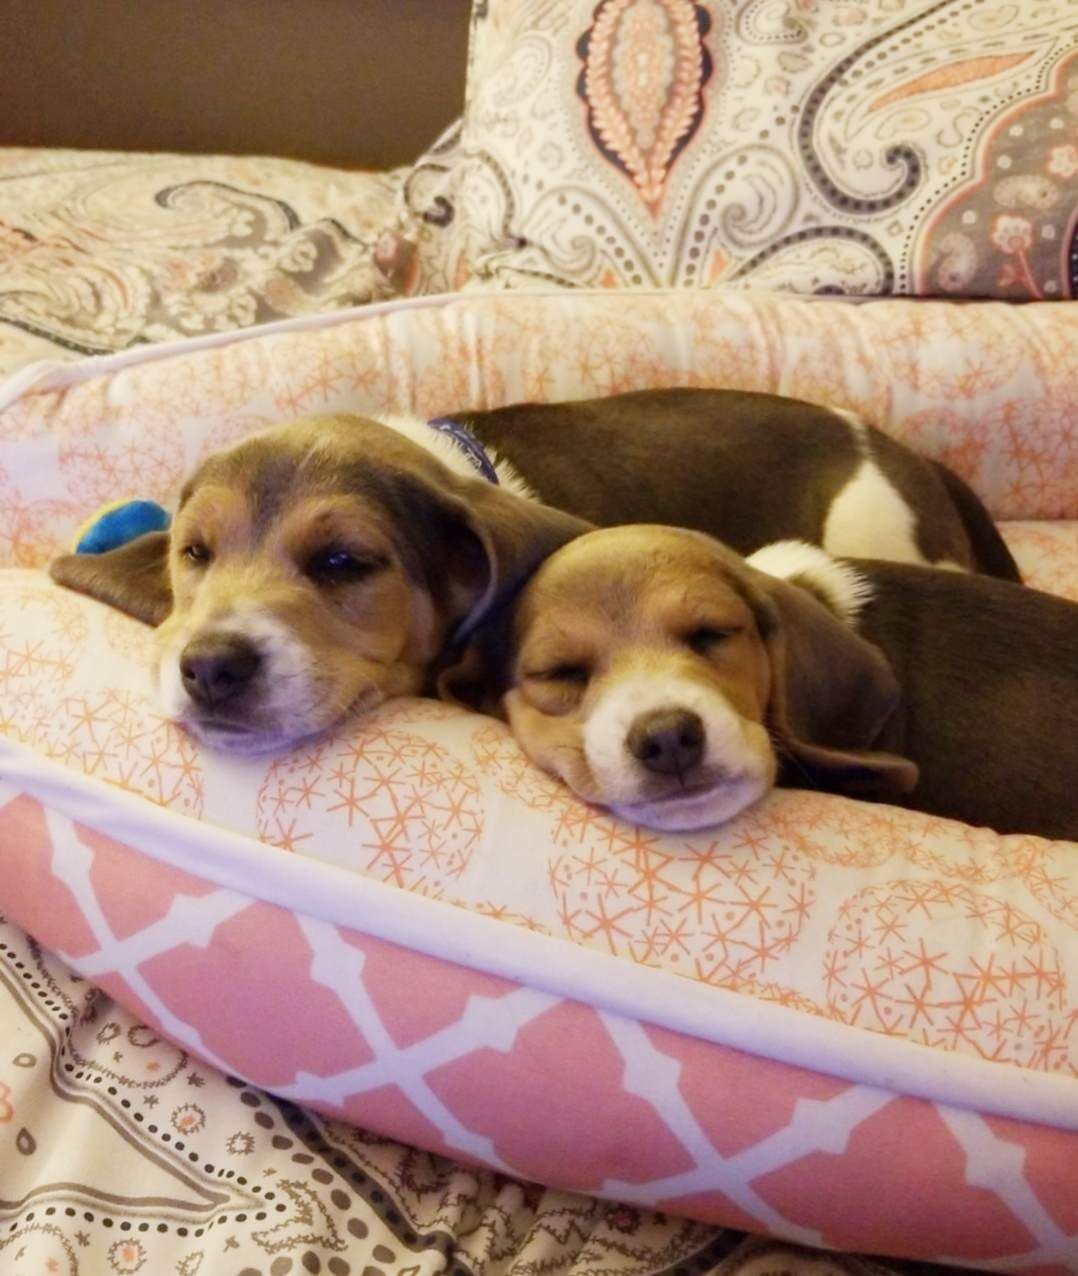 Adopted These Two Beagle Babies This Weekend Reddit Meet Conan